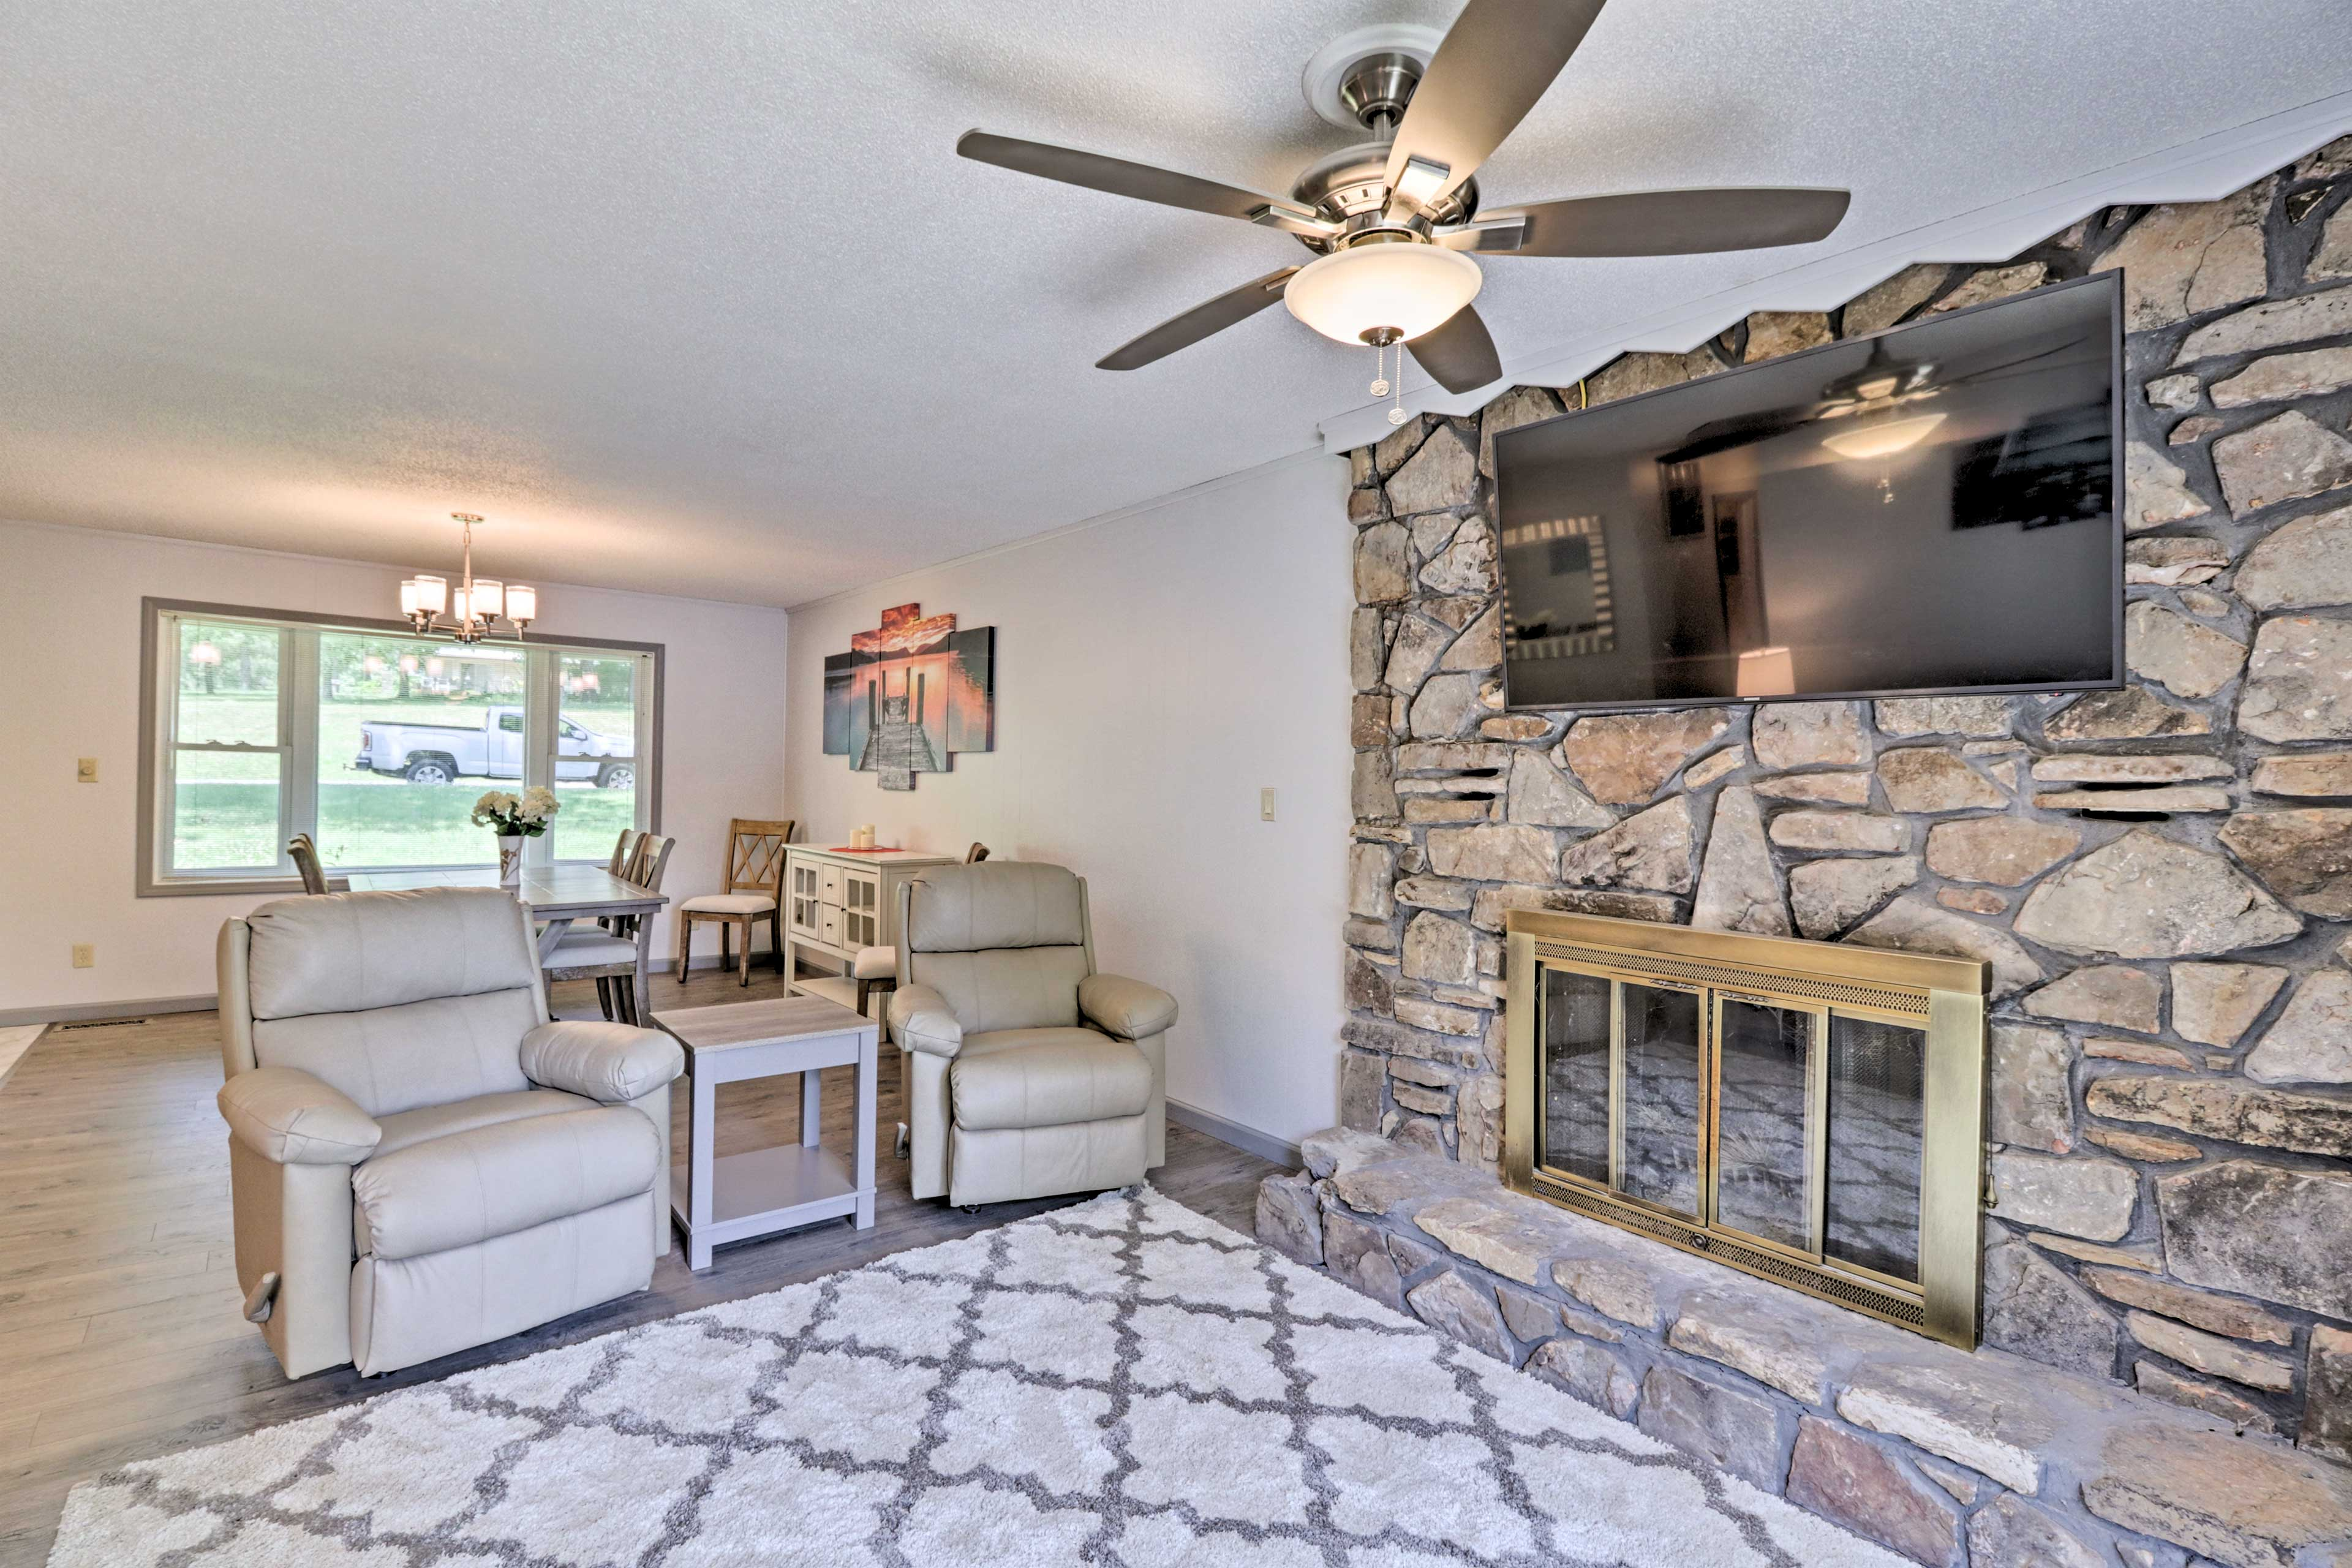 The decorative fireplace adds a lovely ambiance to the space.